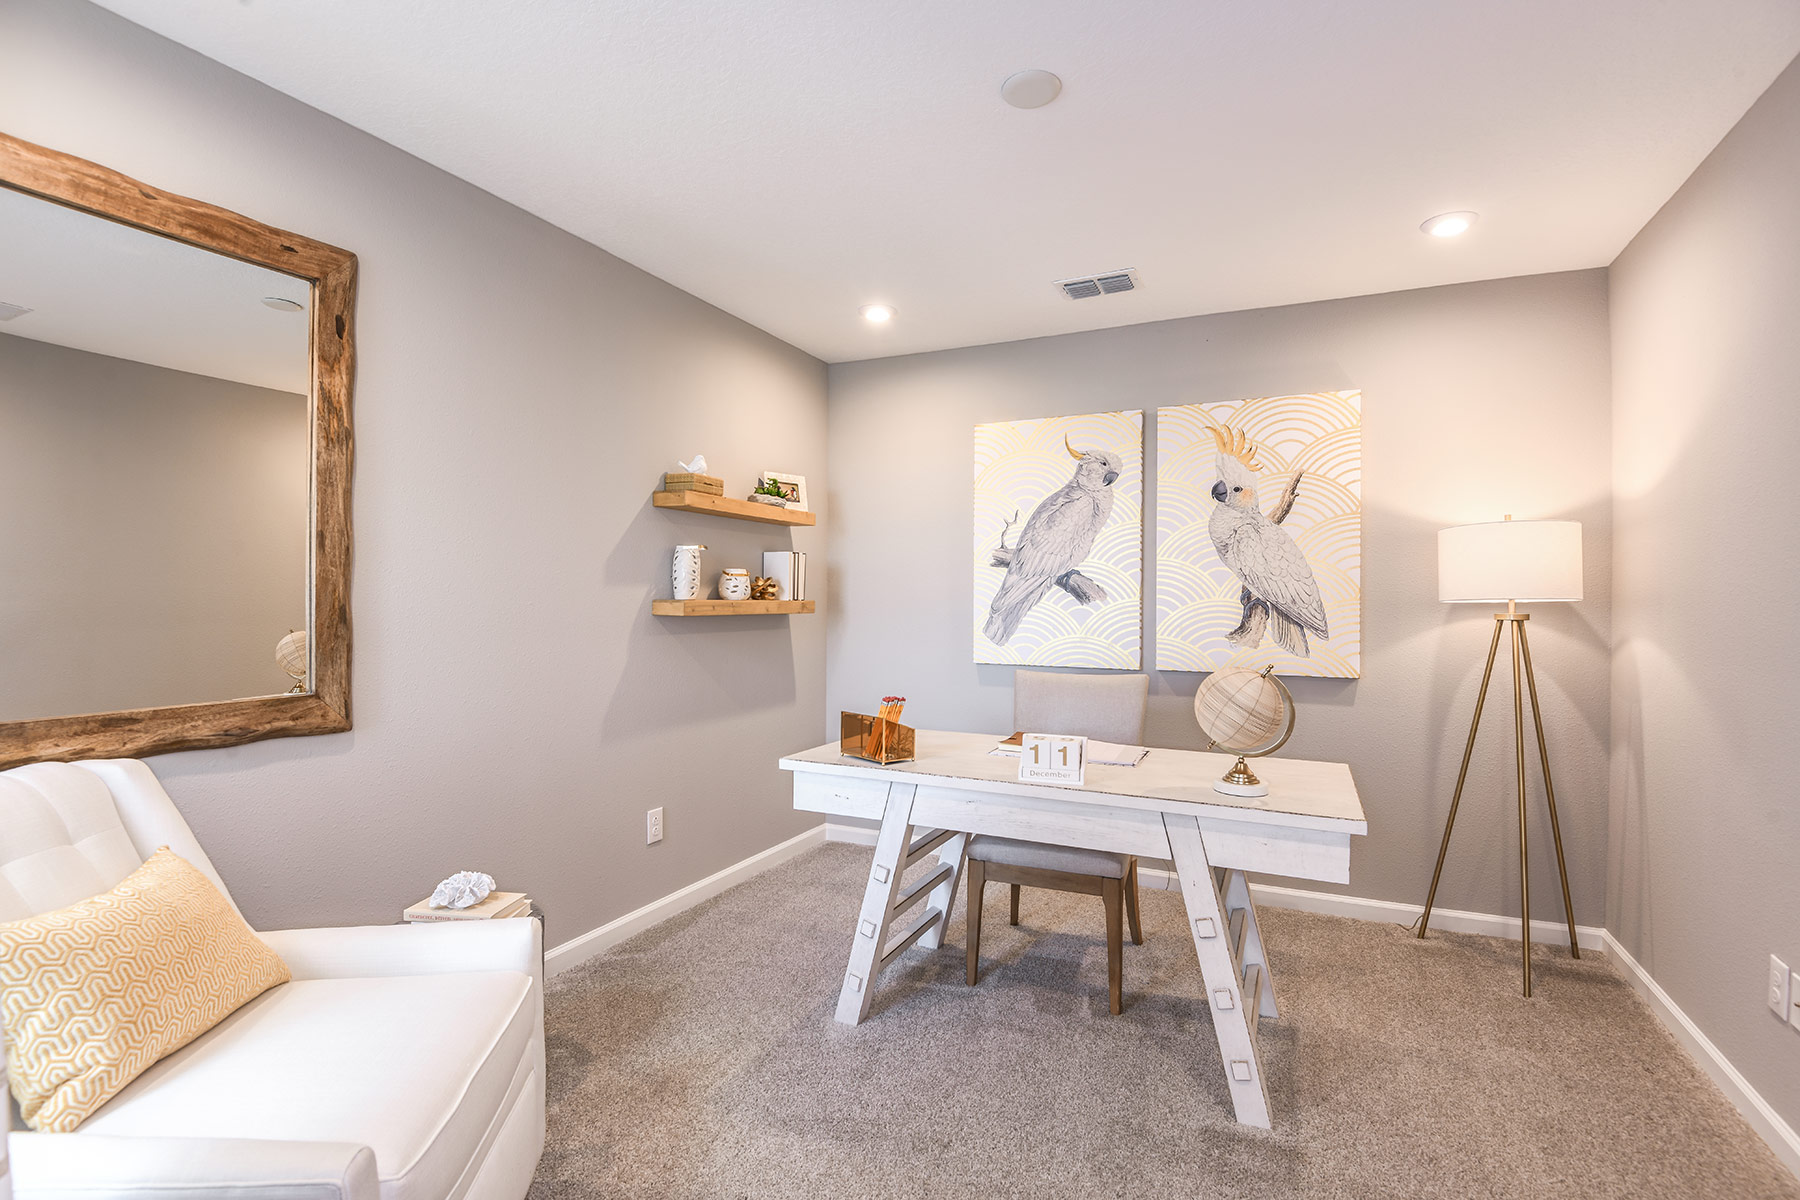 Sebring Plan Study Room at Parkview at Long Lake Ranch in Lutz Florida by Mattamy Homes